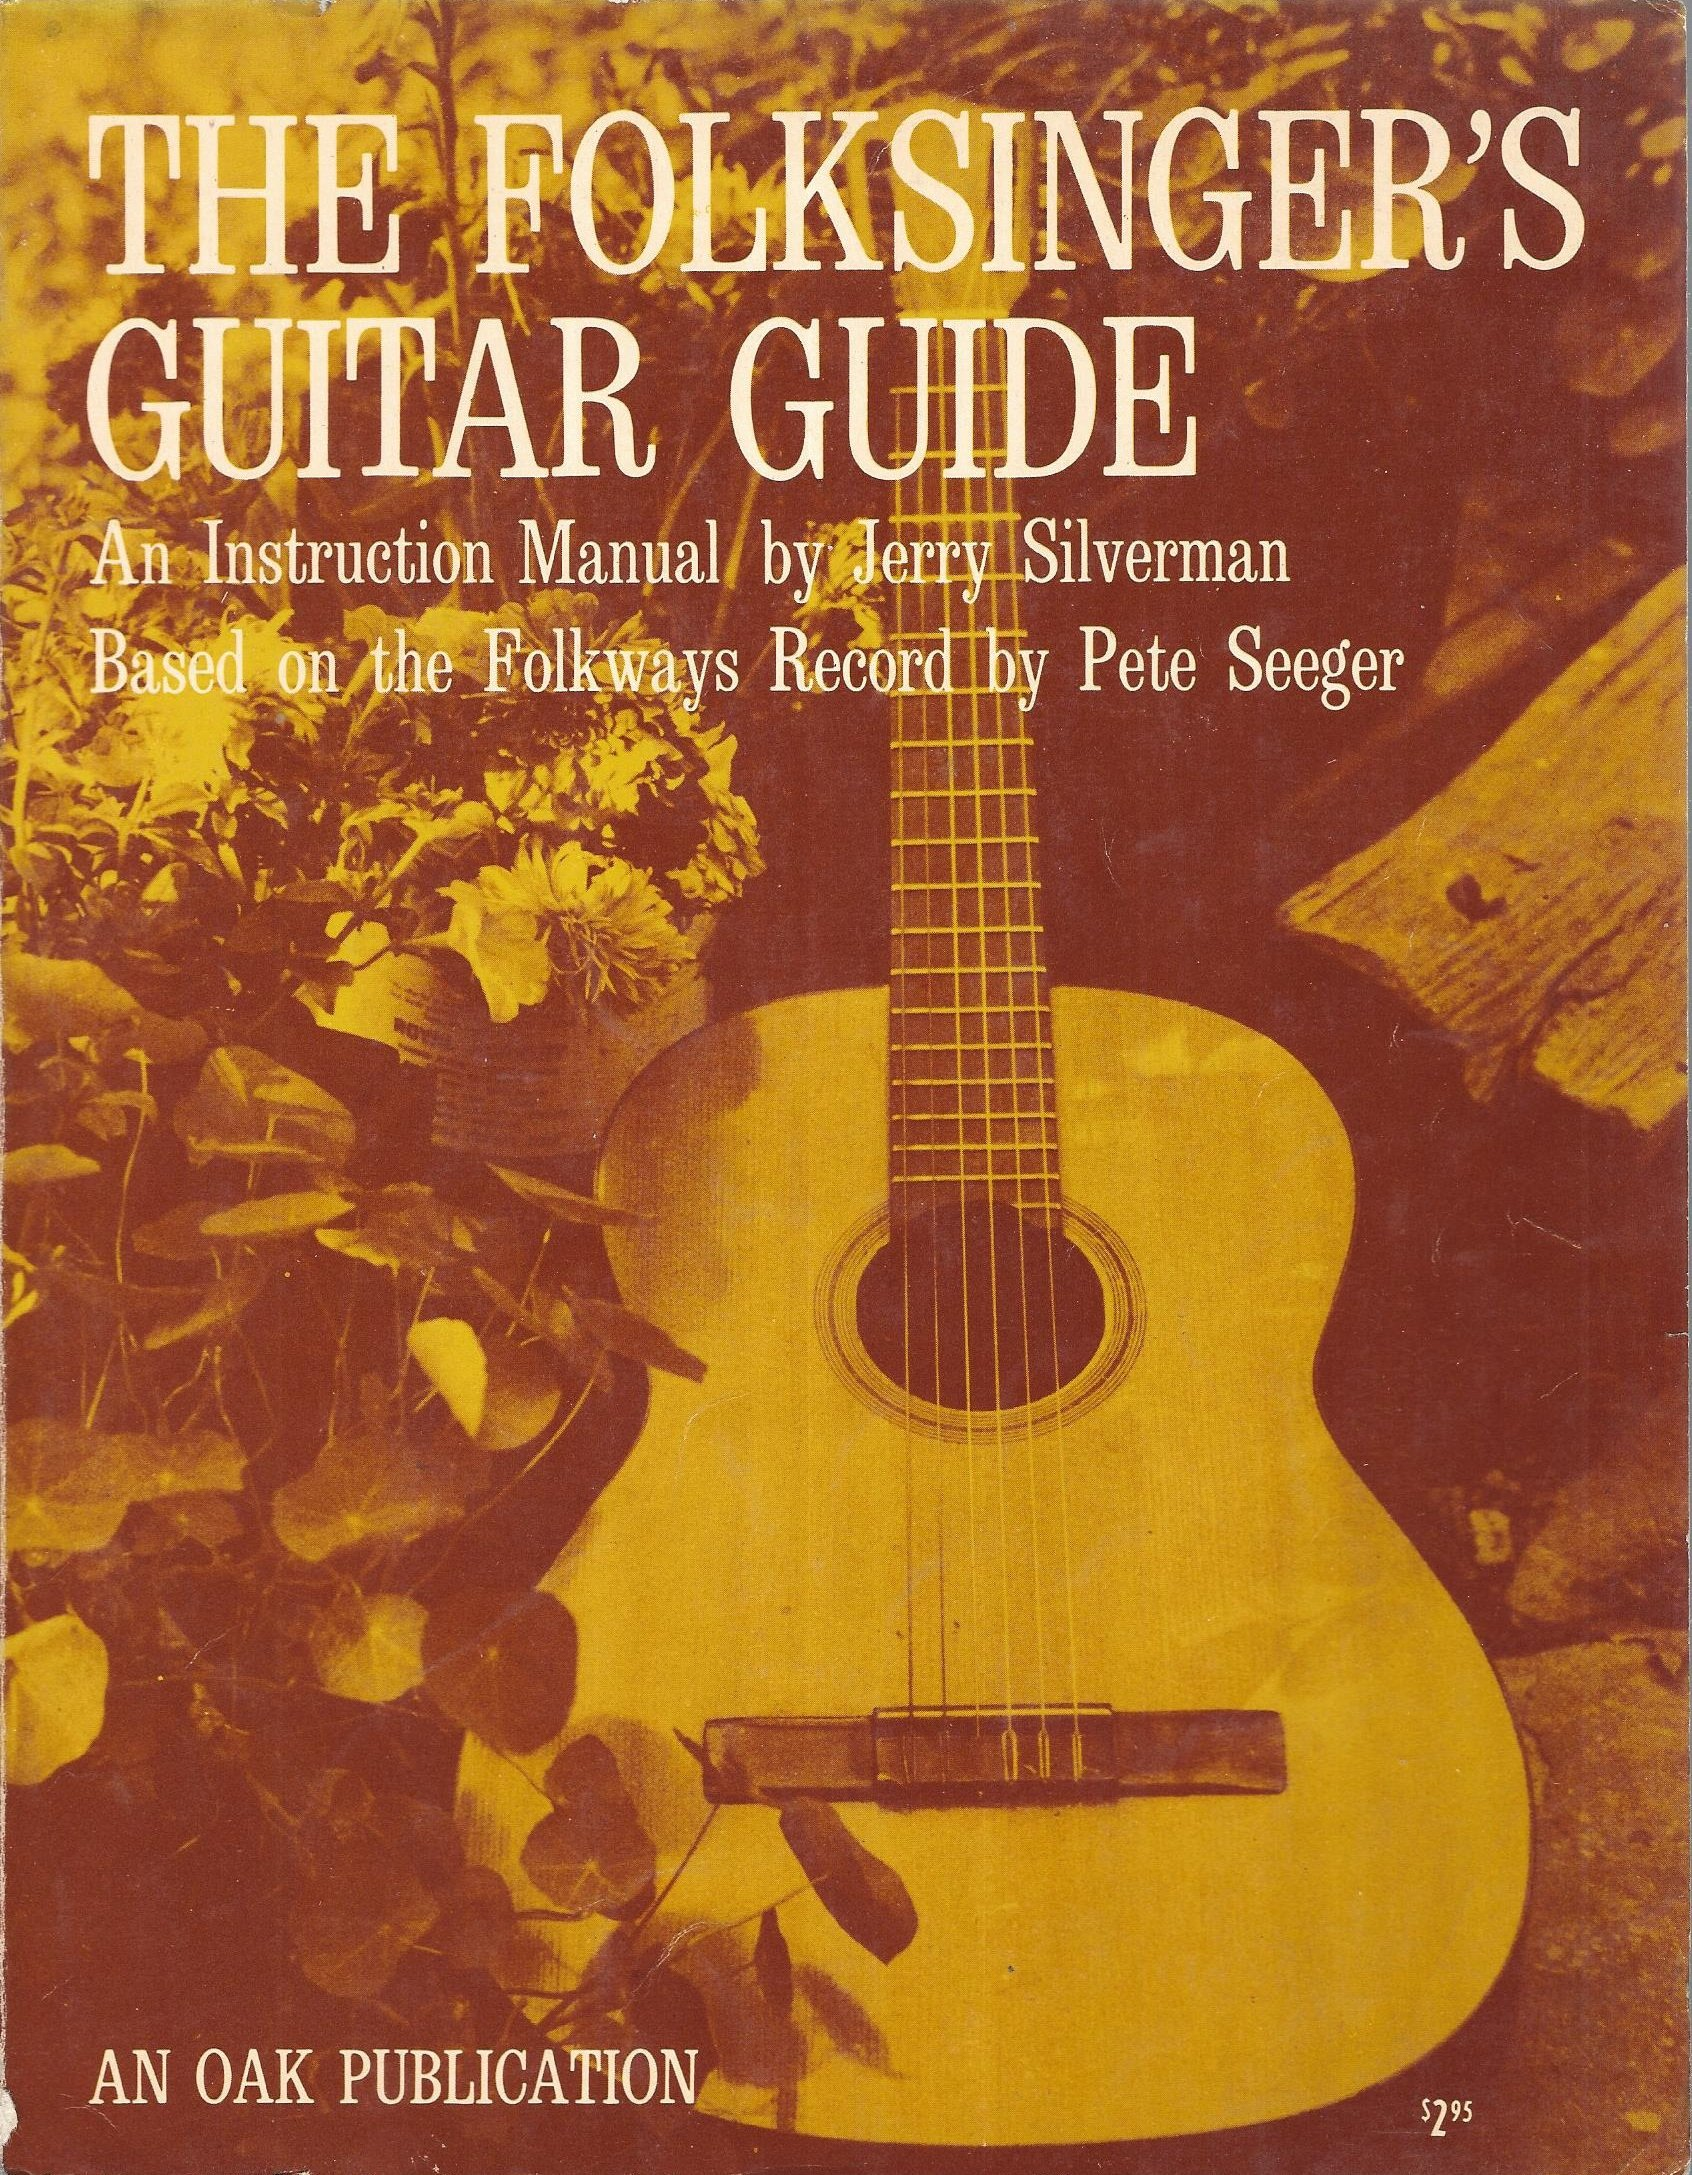 The Folksingers Guitar Guide An Instruction Manual Jerry